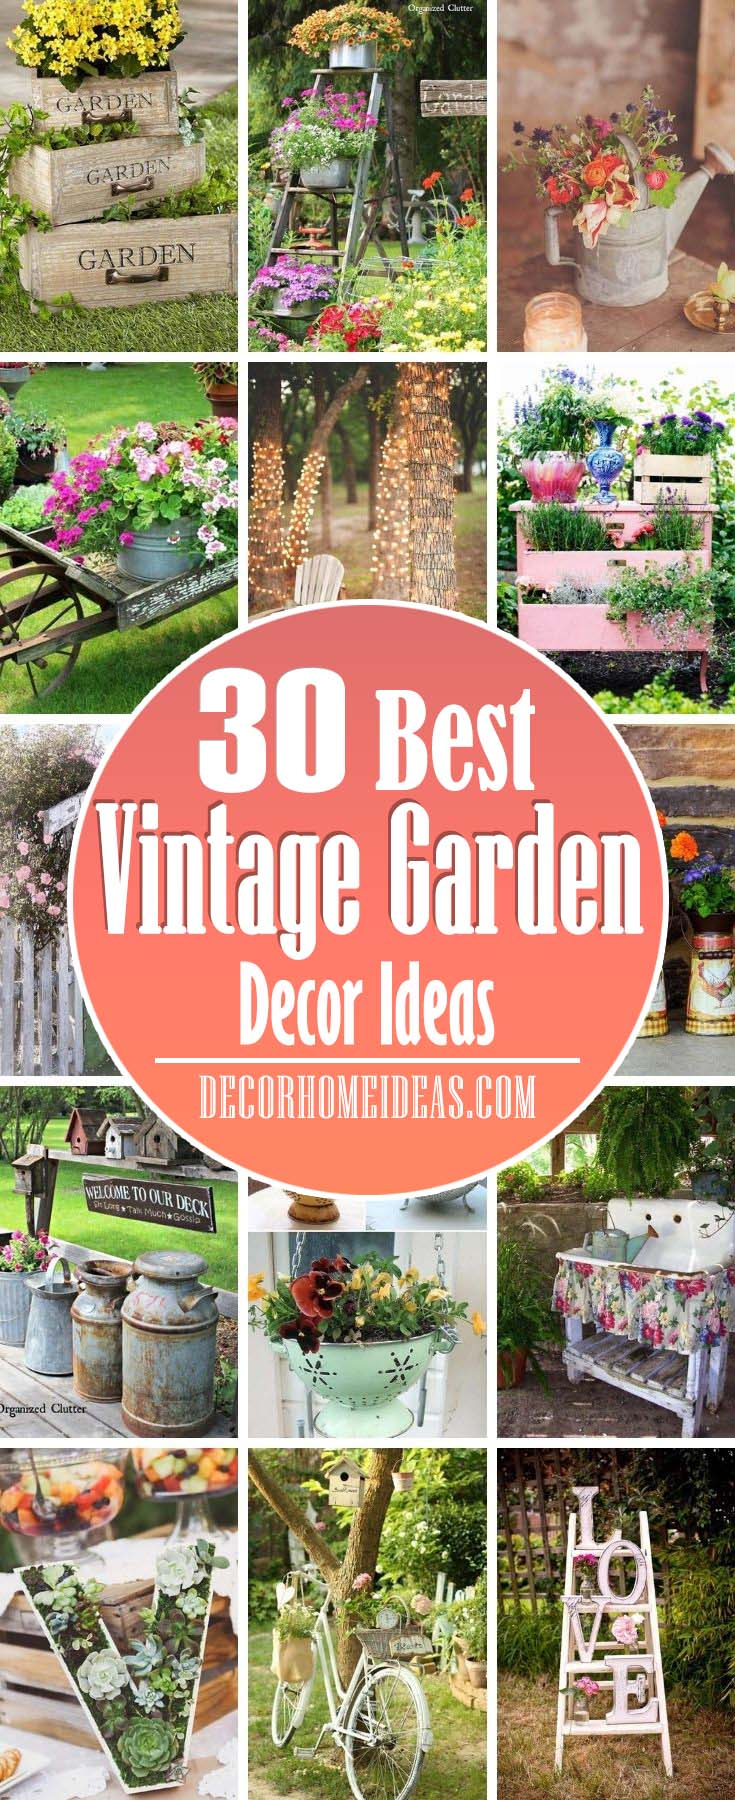 Best Vintage Garden Decor Ideas. Ladders, bicycles. sinks and laddles - there are all great vintage decorations for your garden. Add some vintage flair with these creative ideas. #decorhomeideas